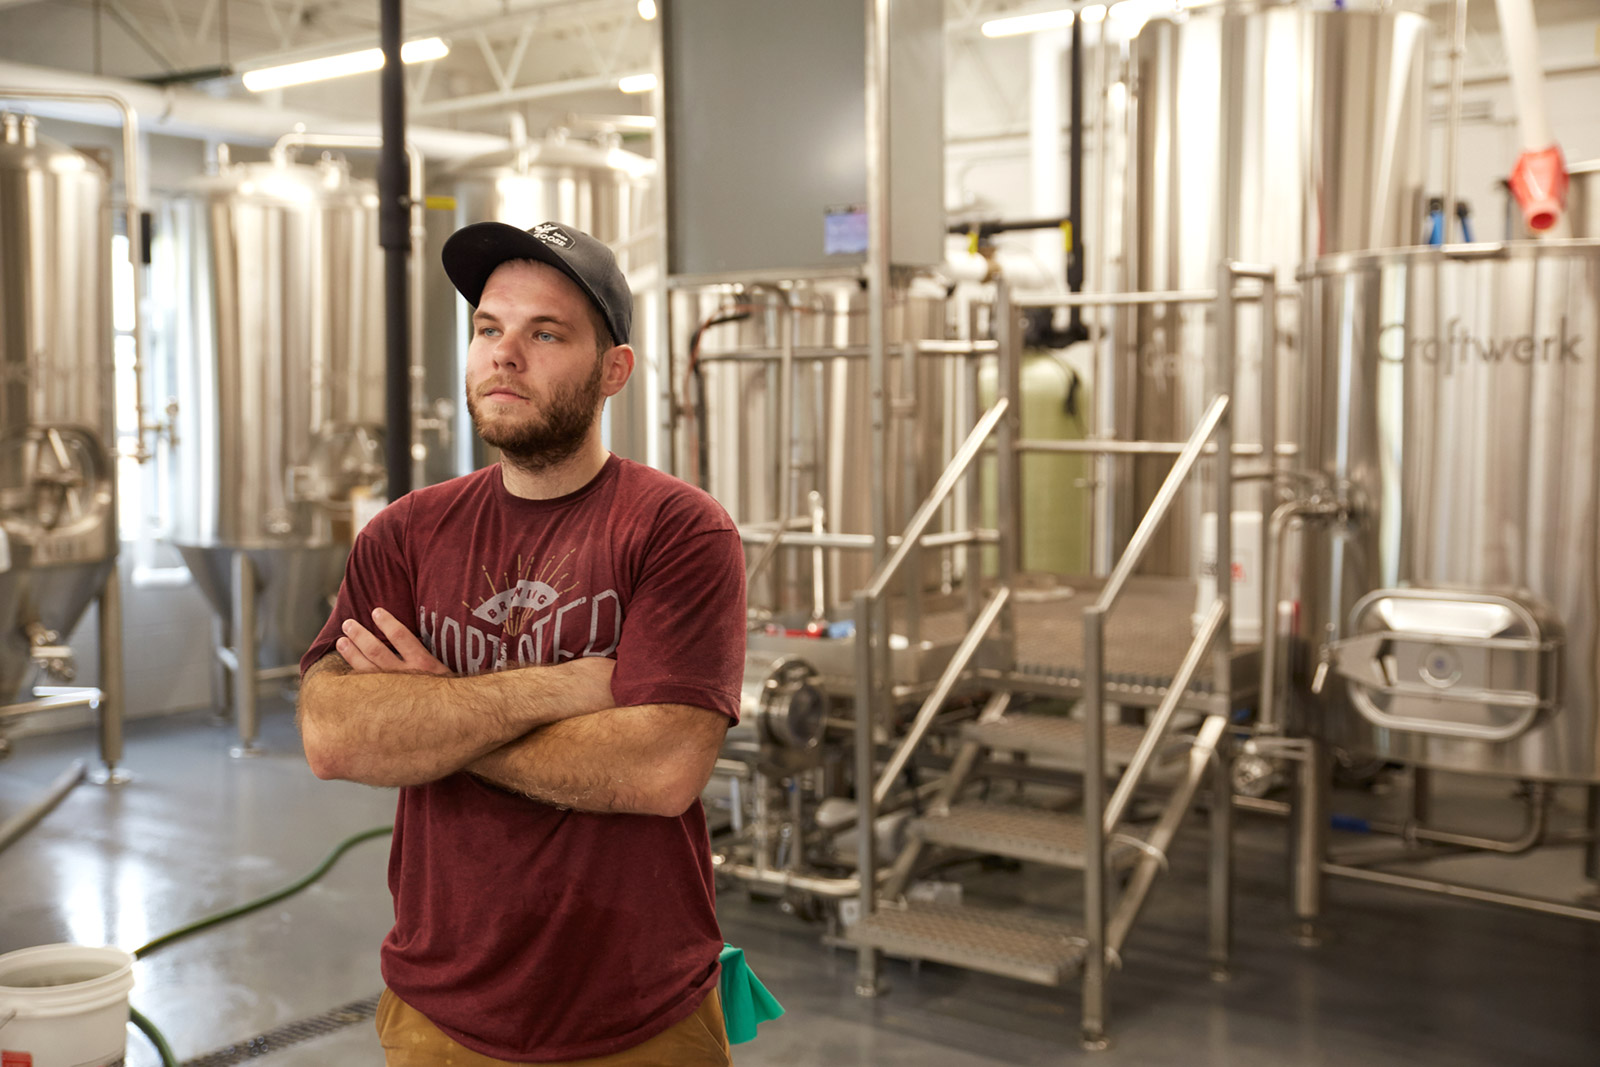 North Pier's Head Brewer, Steve Distasio